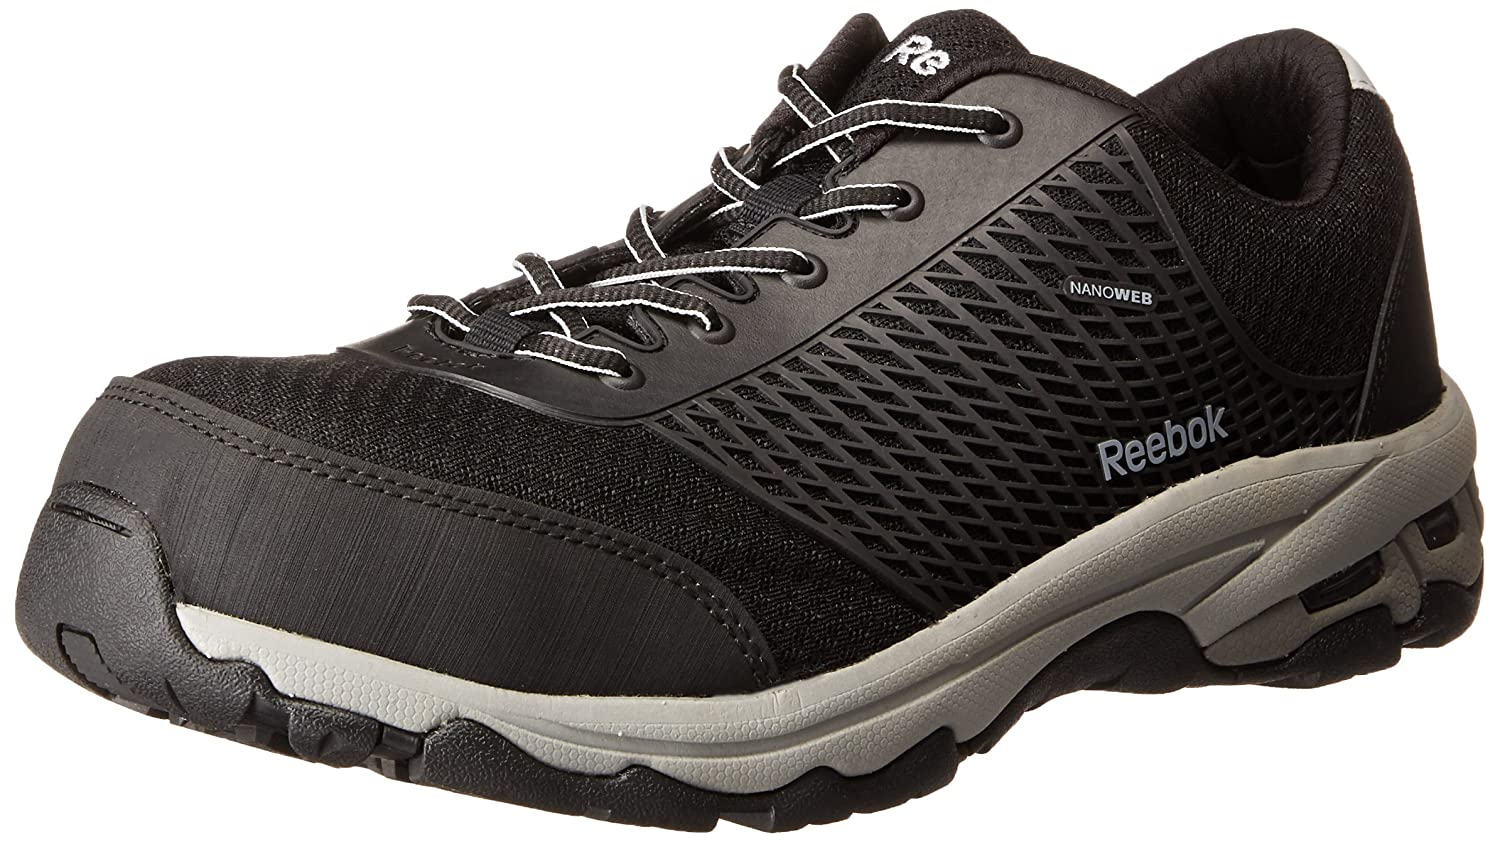 4b3d595996e9 Amazon.com  Reebok Work Men s Heckler RB4625 ESD Athletic Safety Shoe  Shoes